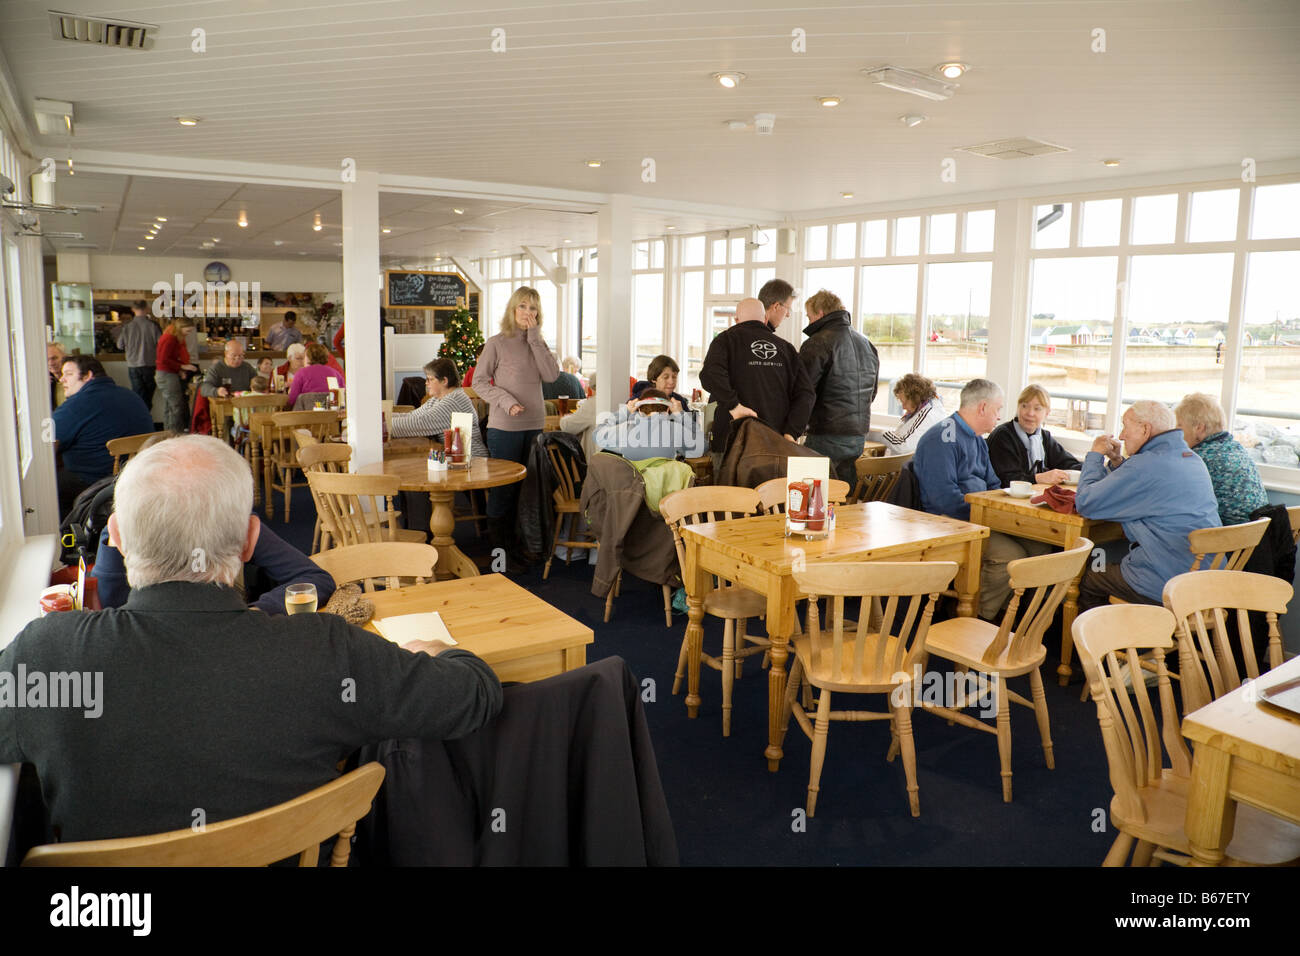 People having coffee in the cafe, The pier, Southwold, Suffolk, England - Stock Image